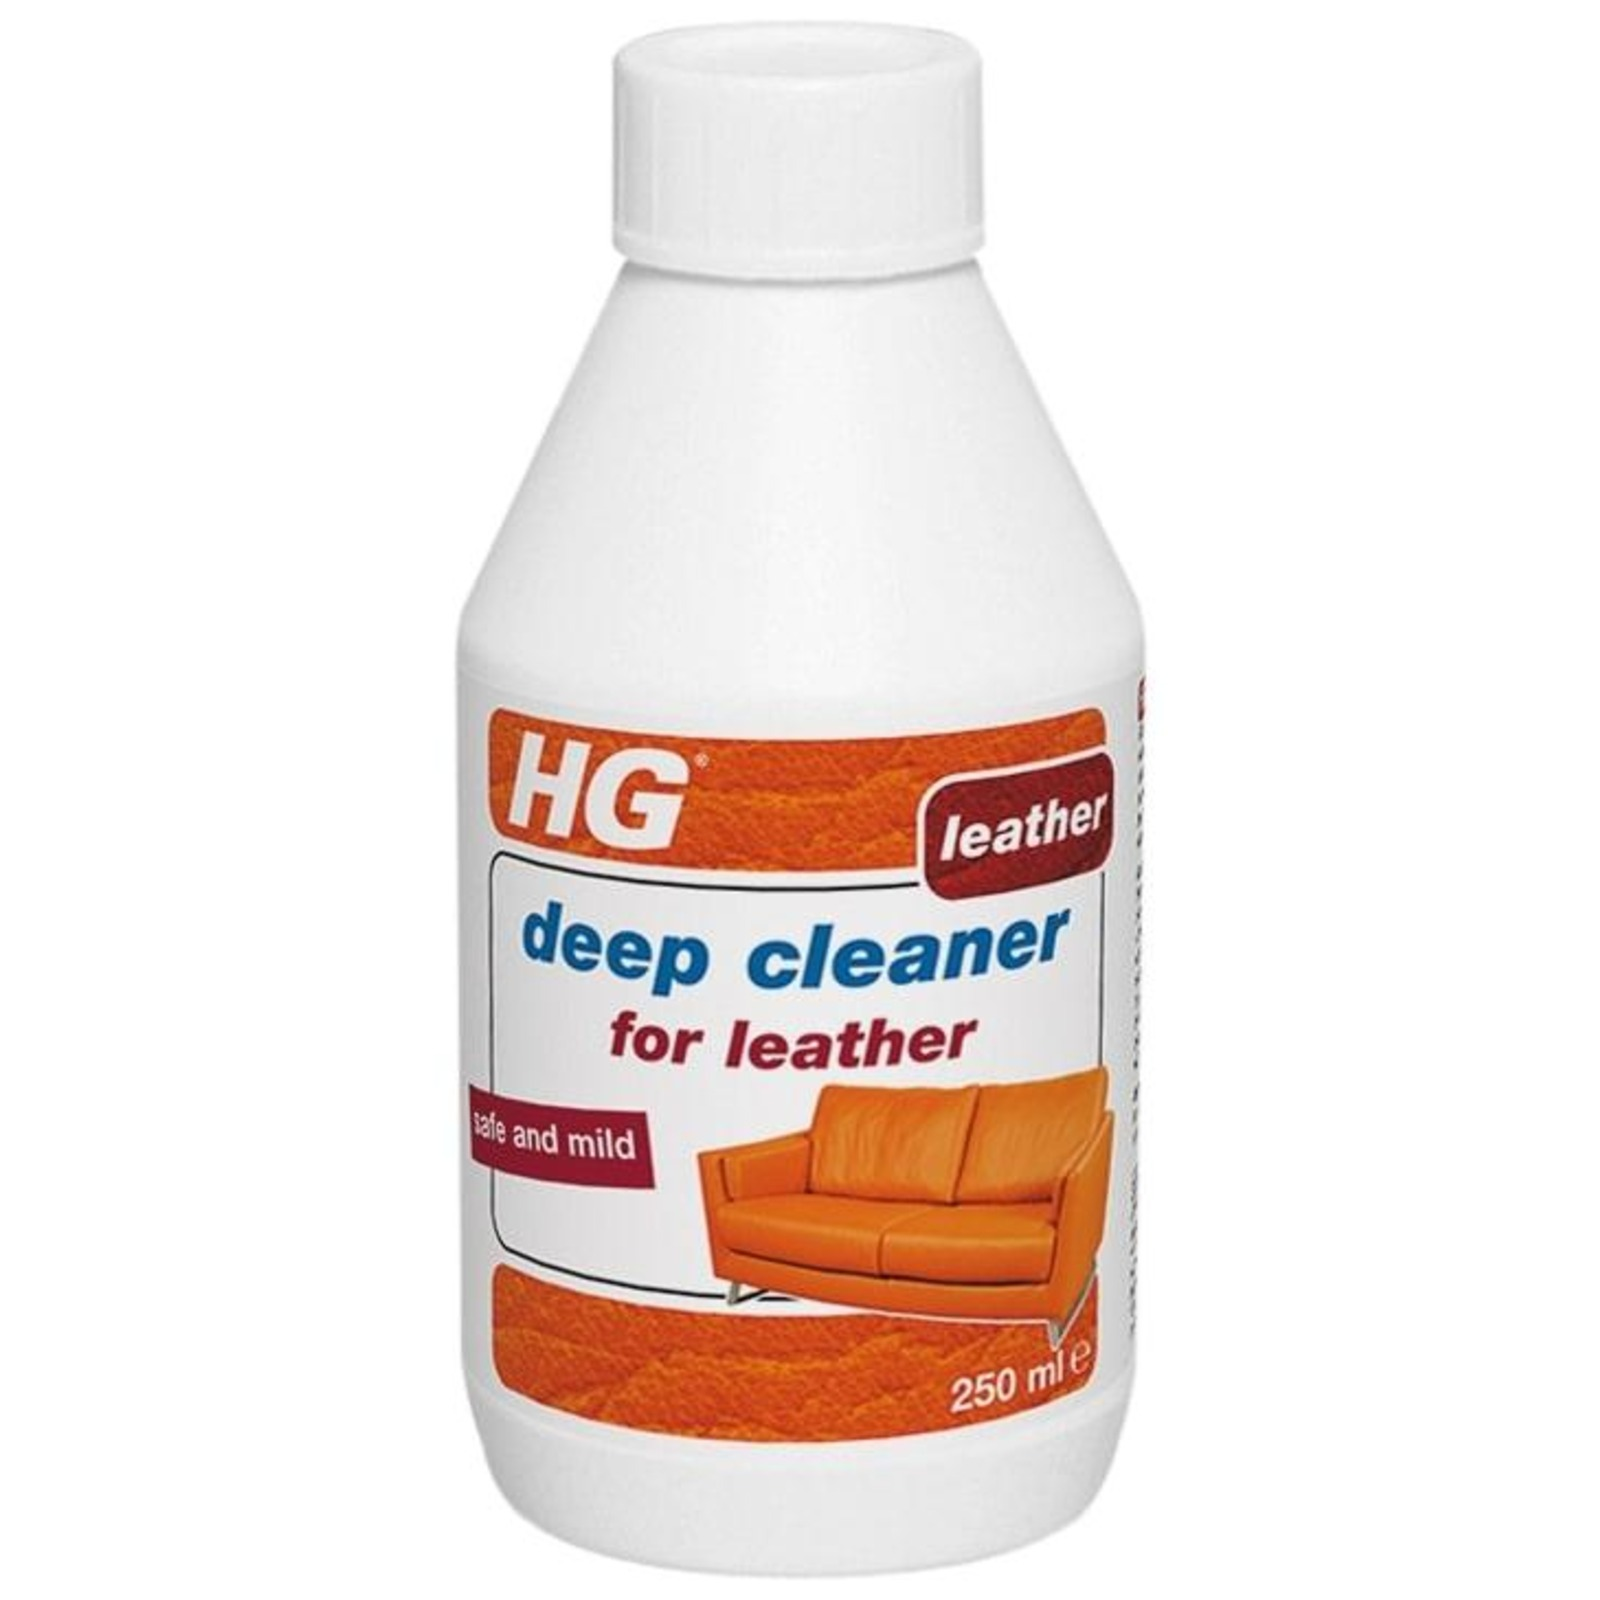 HG 173030106 DEEP CLEANER FOR LEATHER